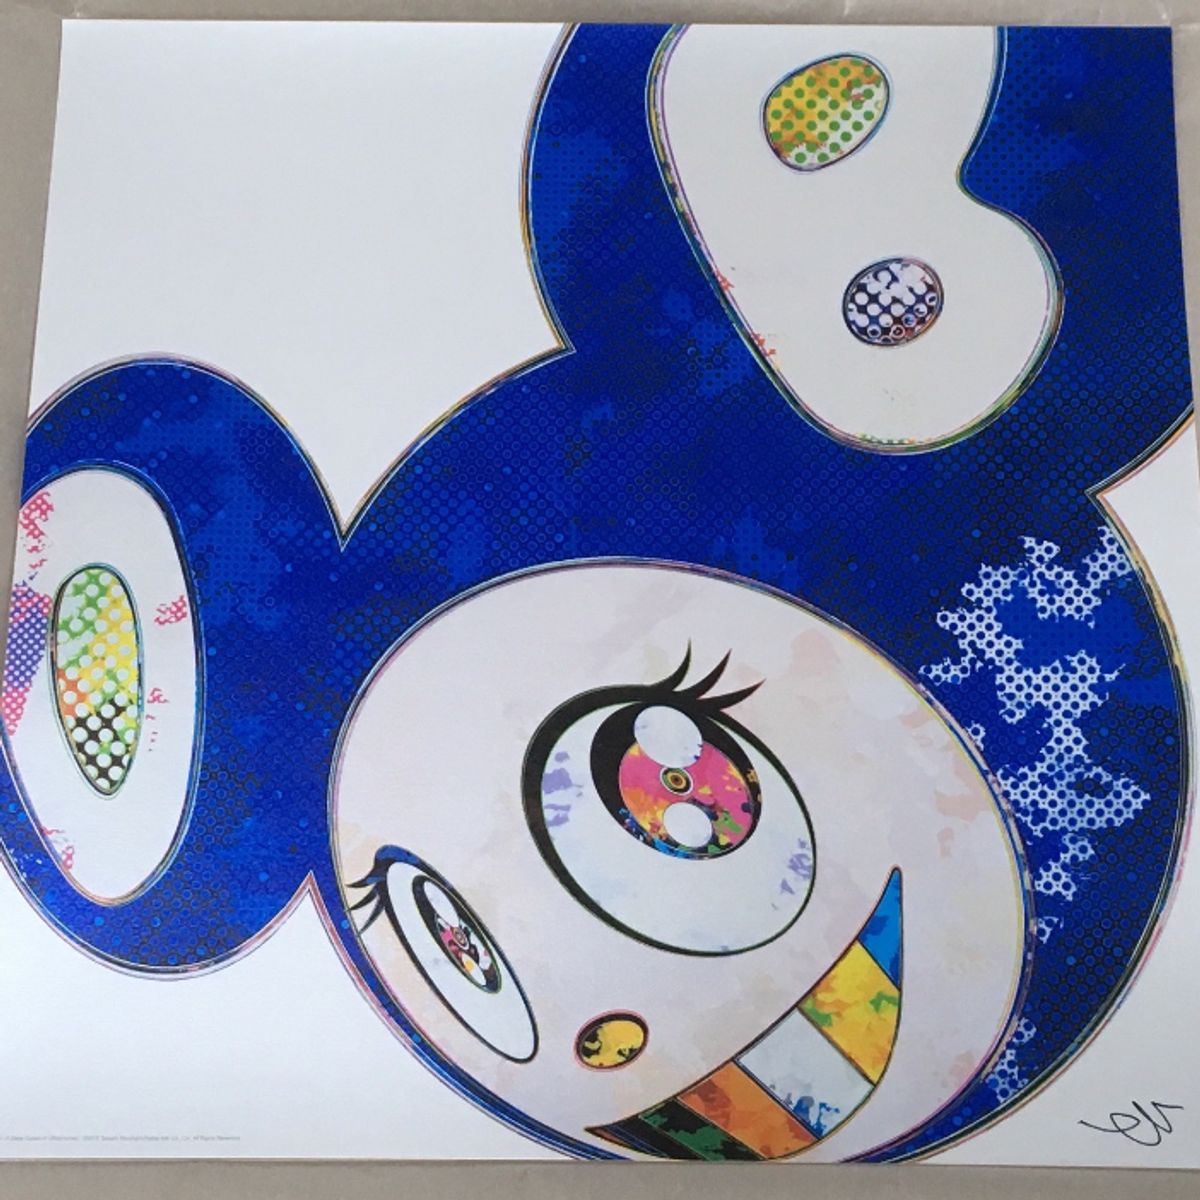 And then, and then, and then by Takashi Murakami, Fausto Gasparetto